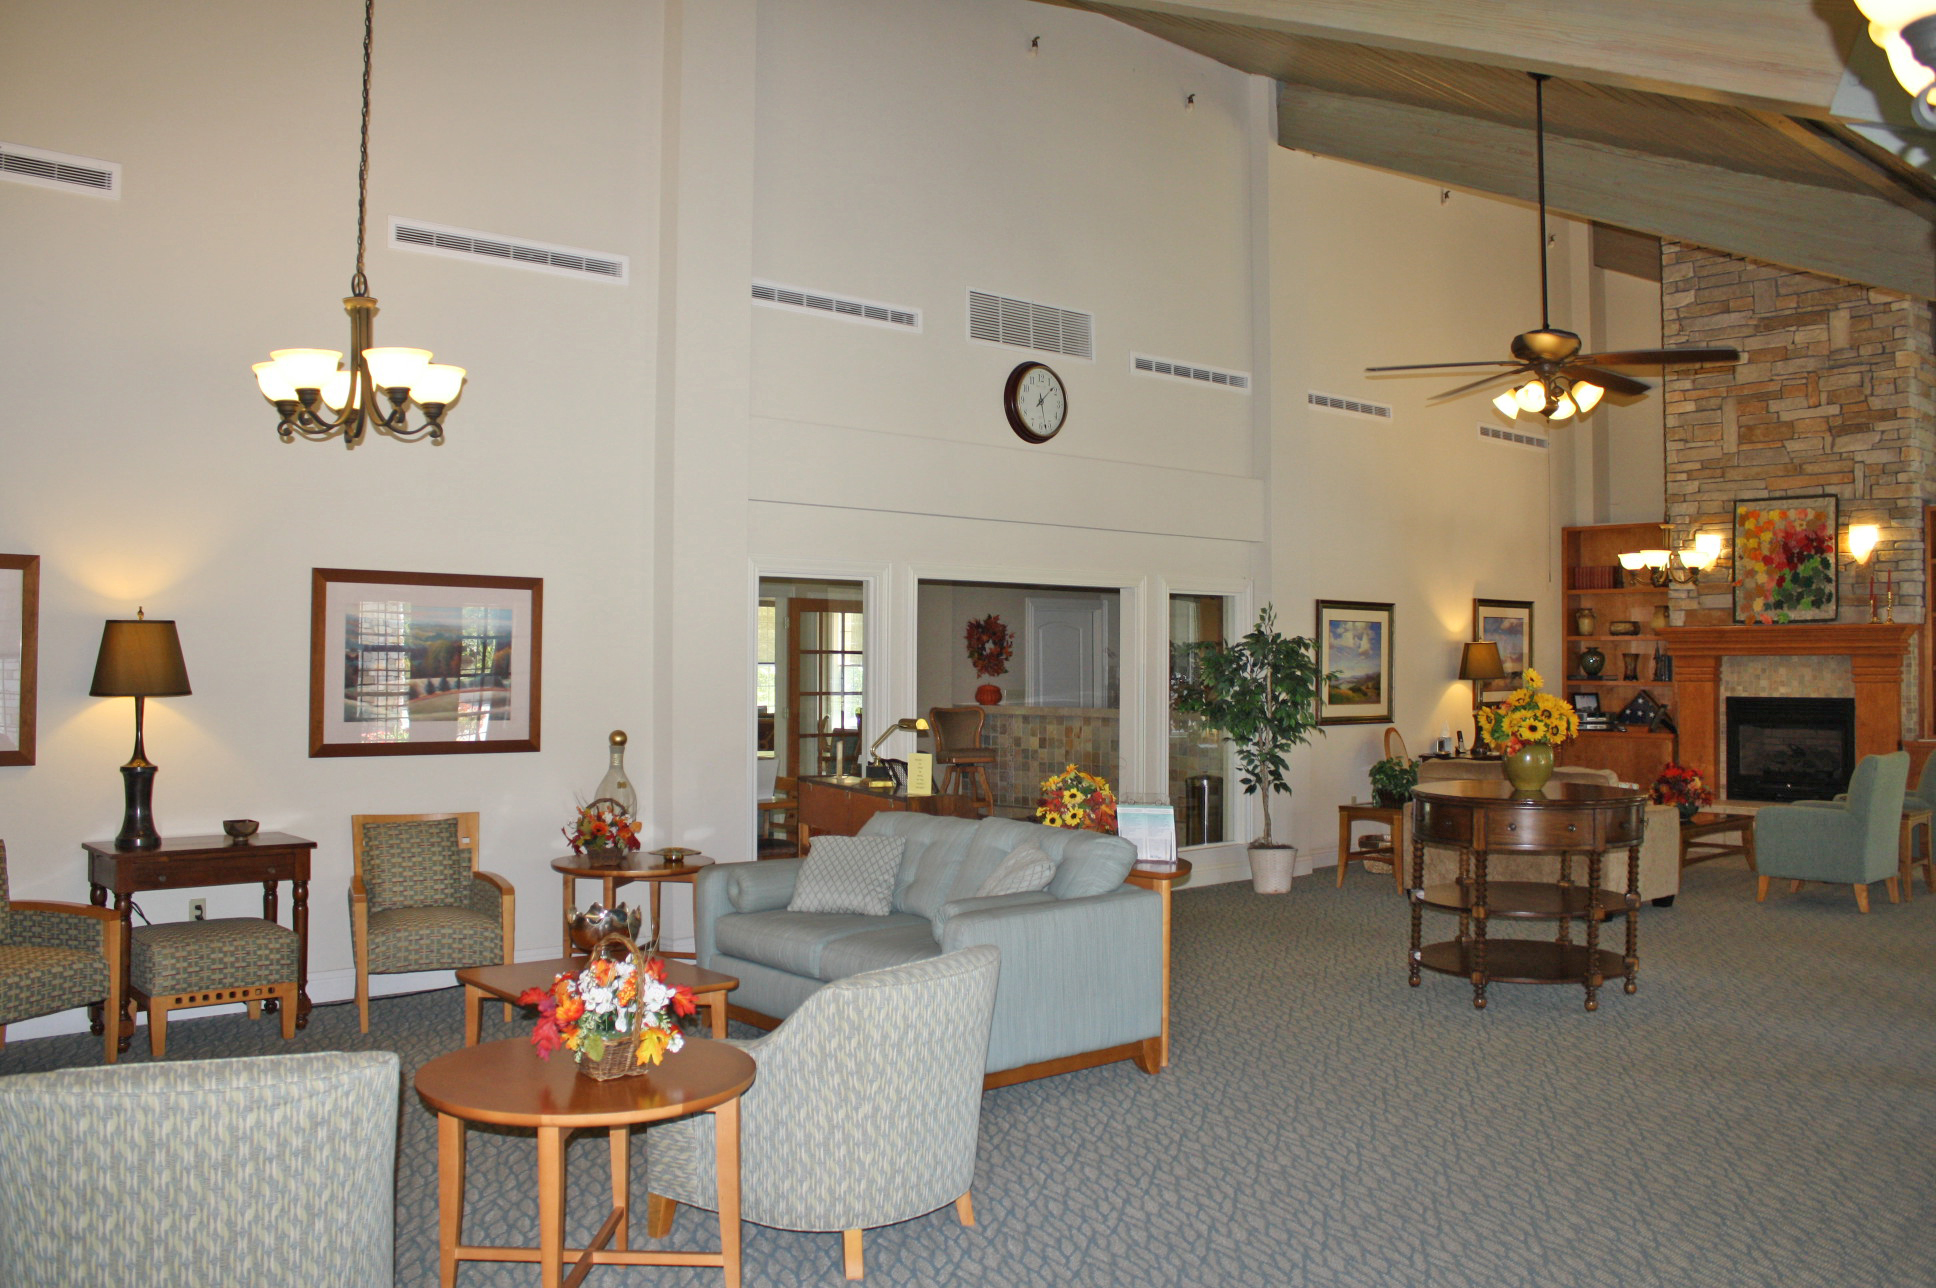 Lobby Area | The Plaza at Highlands Crossing